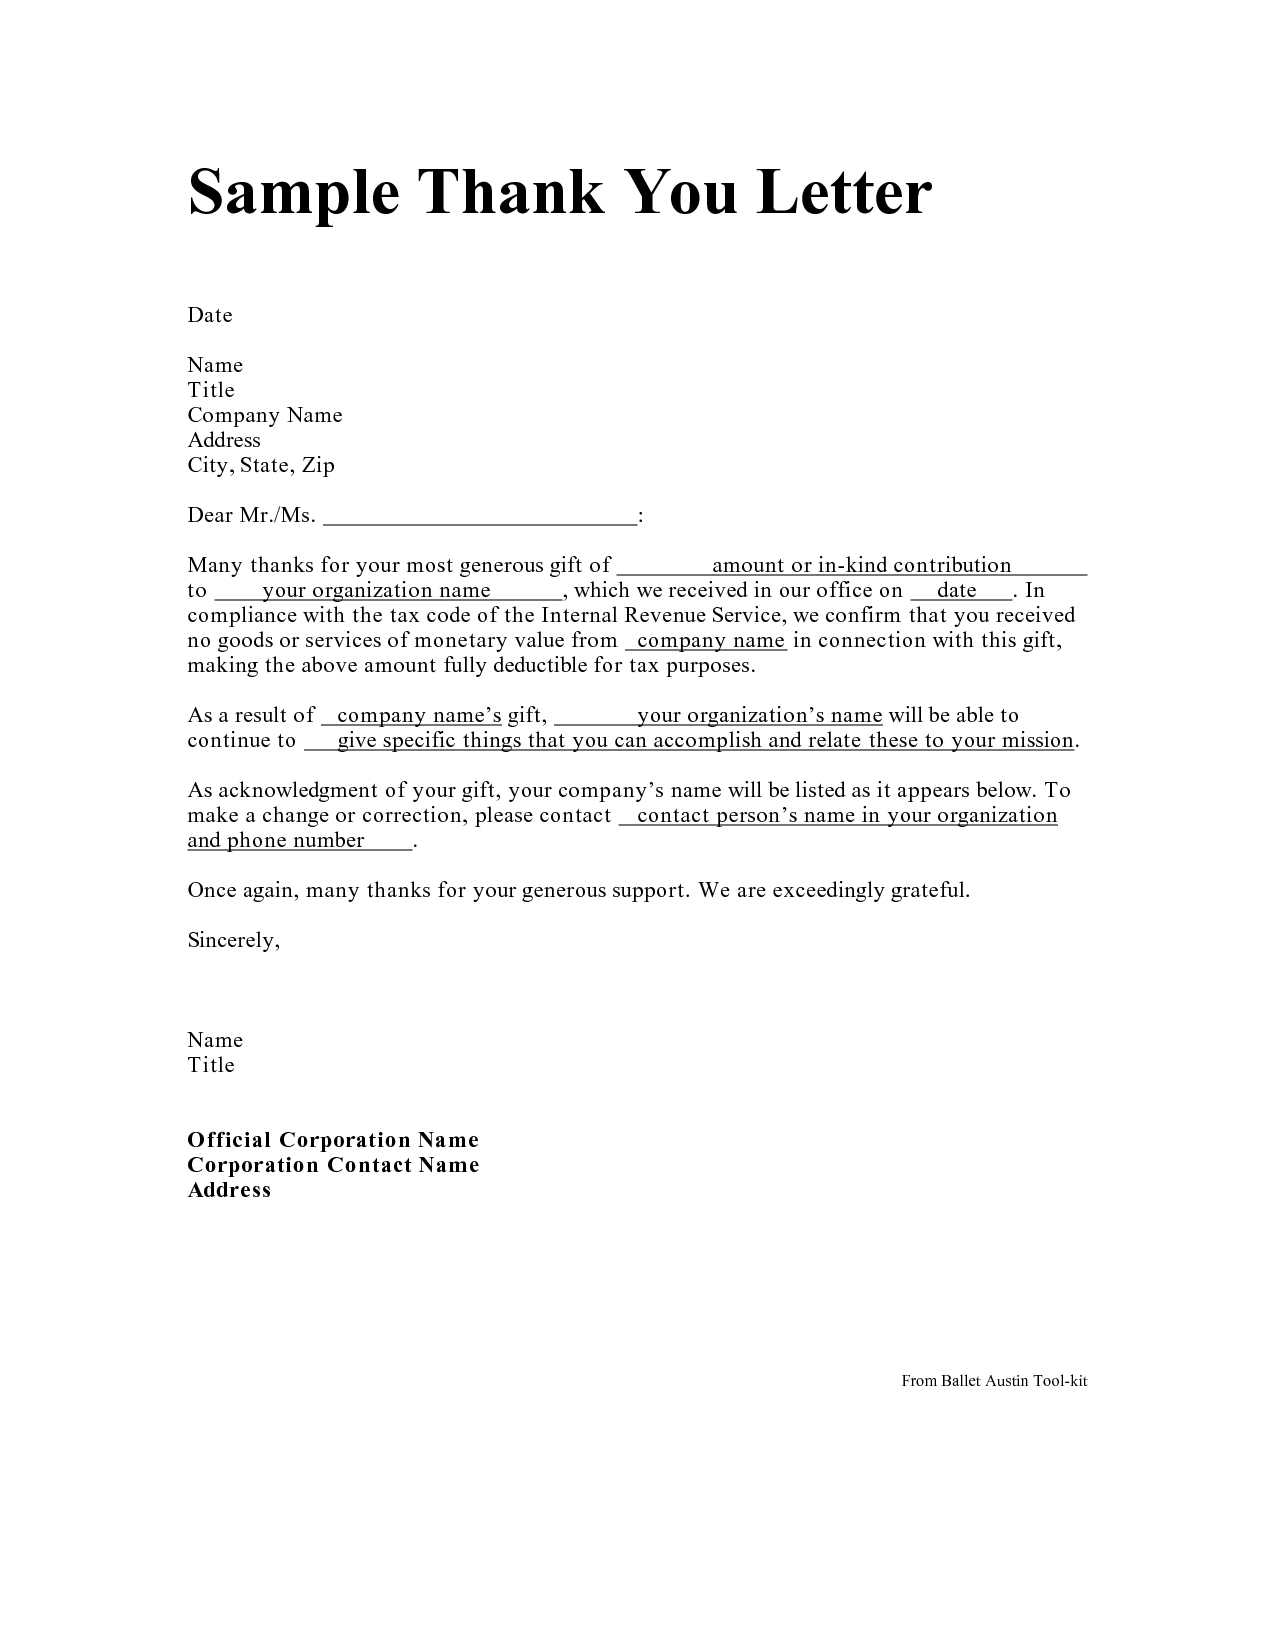 Audit Confirmation Letter Template - Personal Thank You Letter Personal Thank You Letter Samples